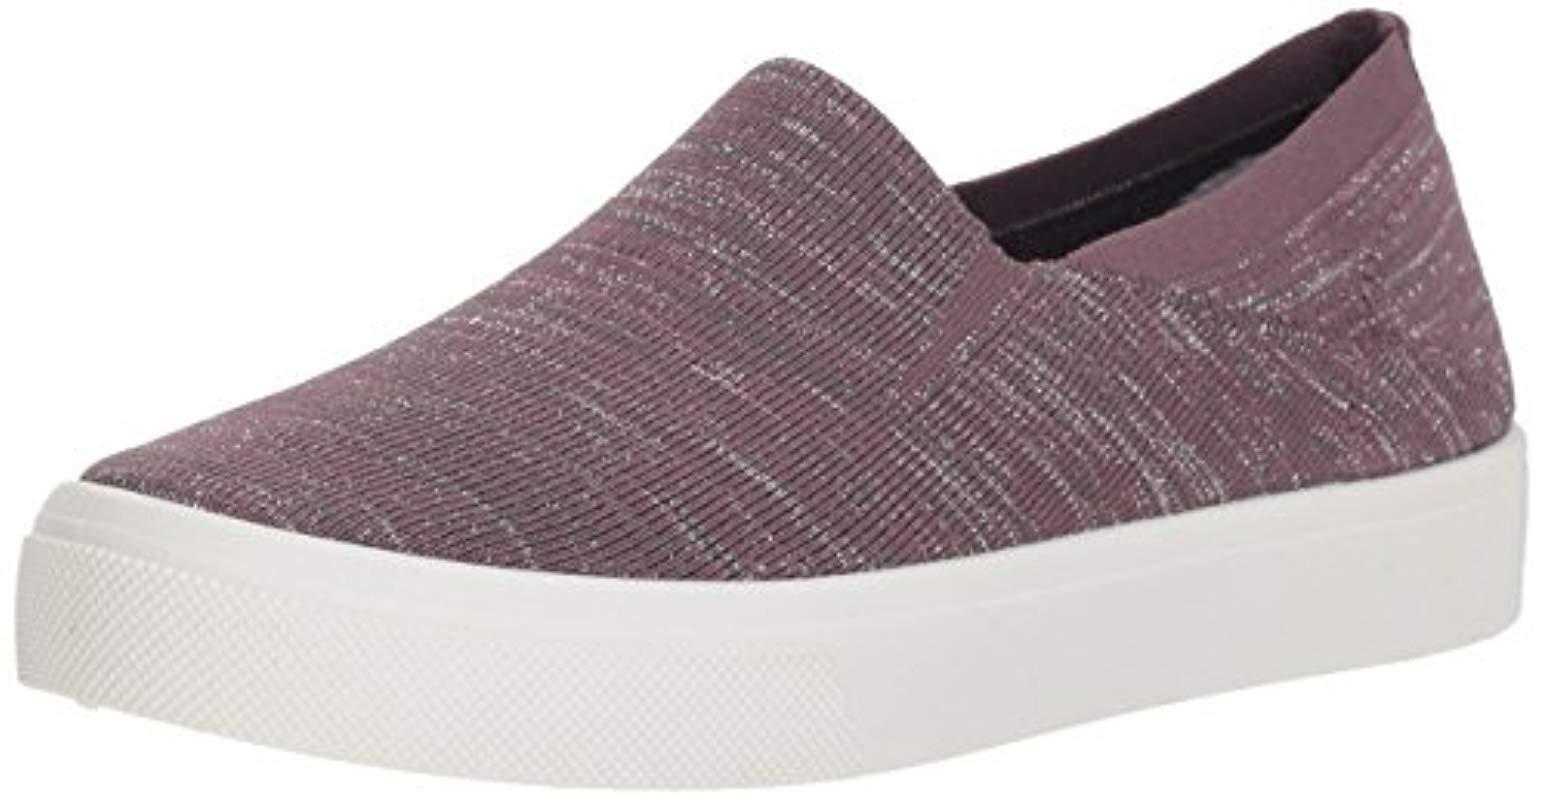 promo code 0ac45 674e7 Skechers. Women s Poppy-cloud Dust.